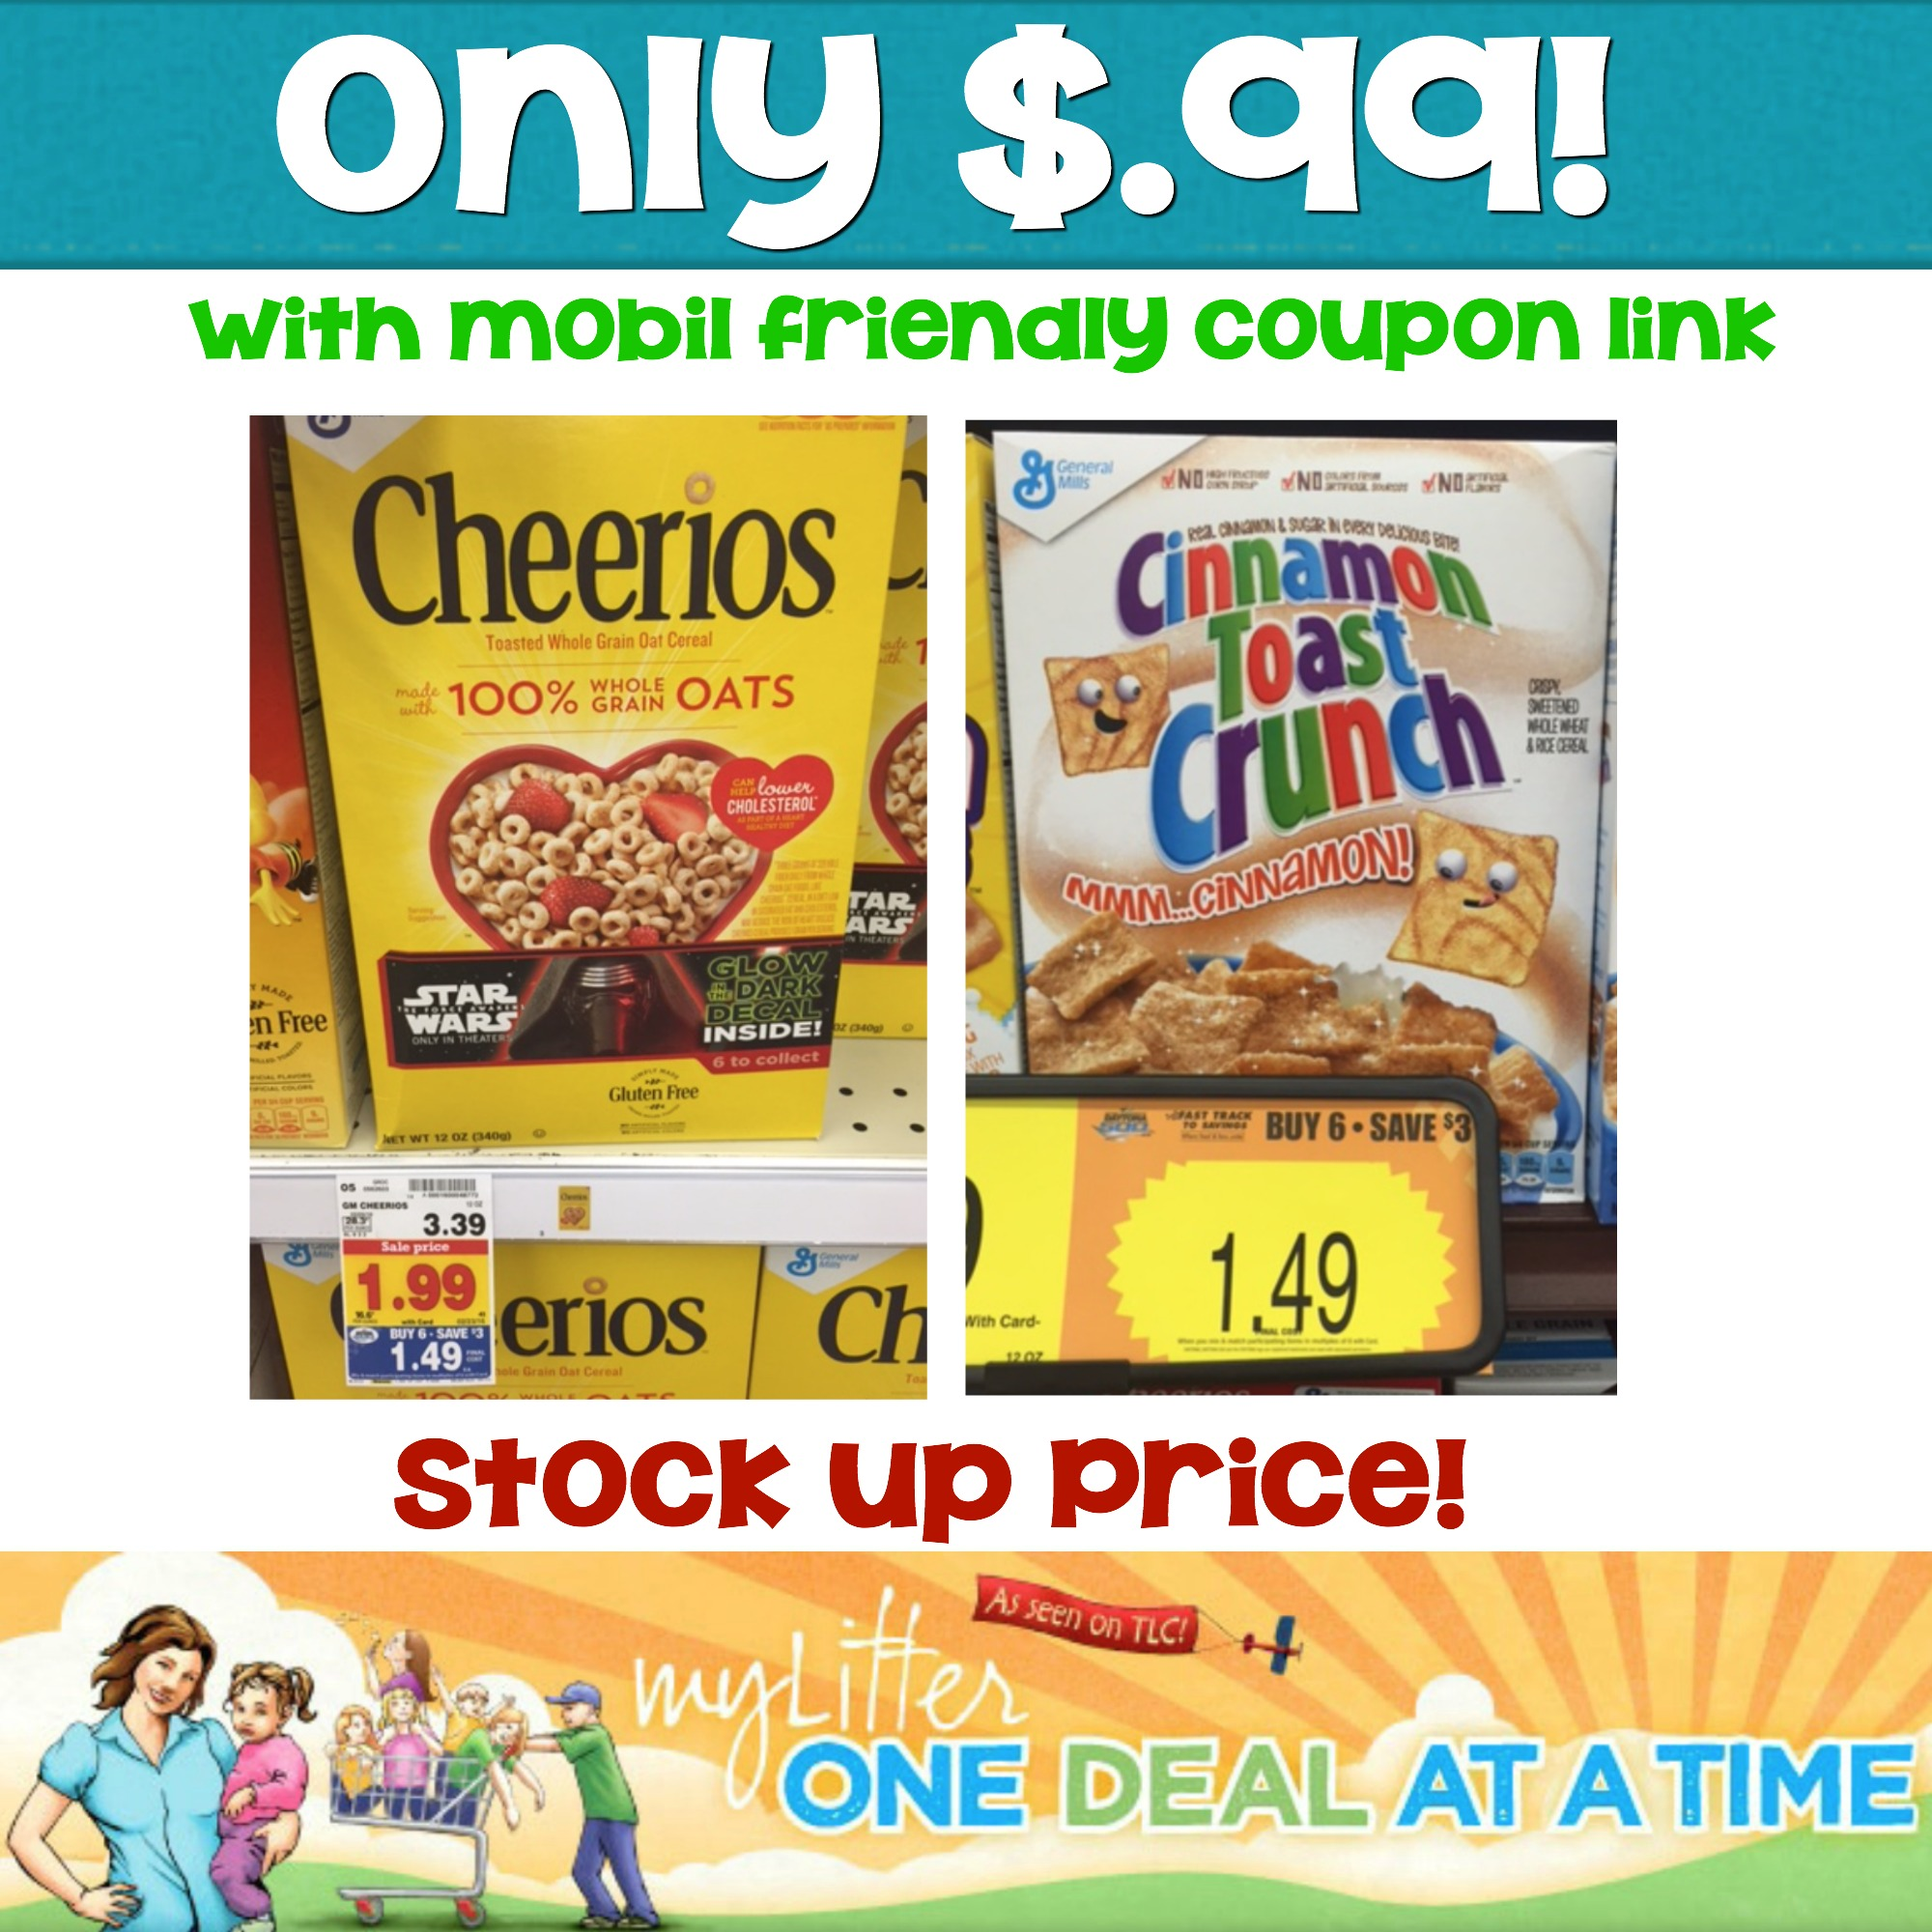 Cereal only $.99! Stock up price!